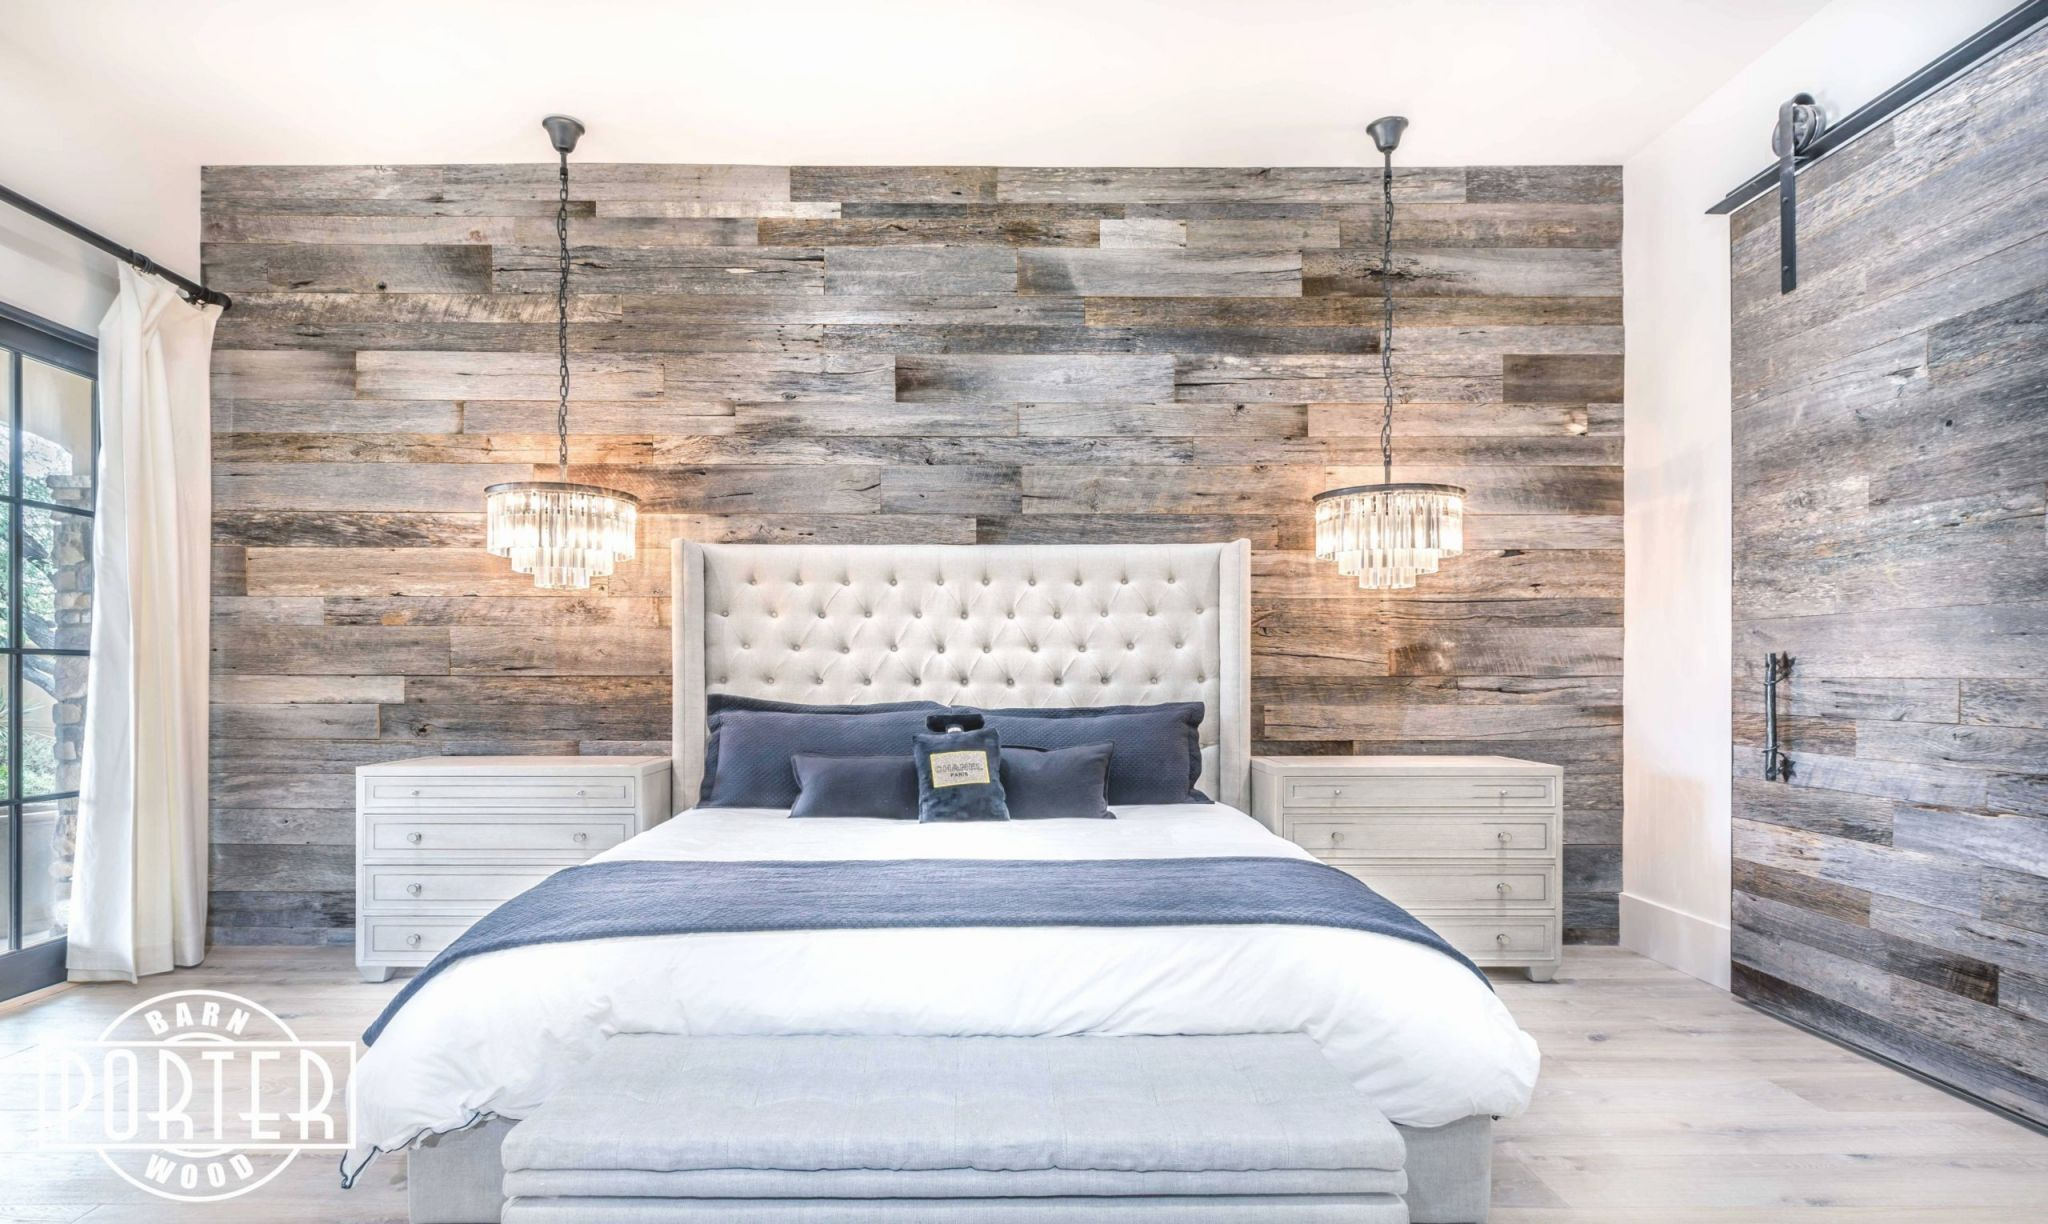 Bedroom Ideas : Wall Decor Home Art Above Bed For Teenage with